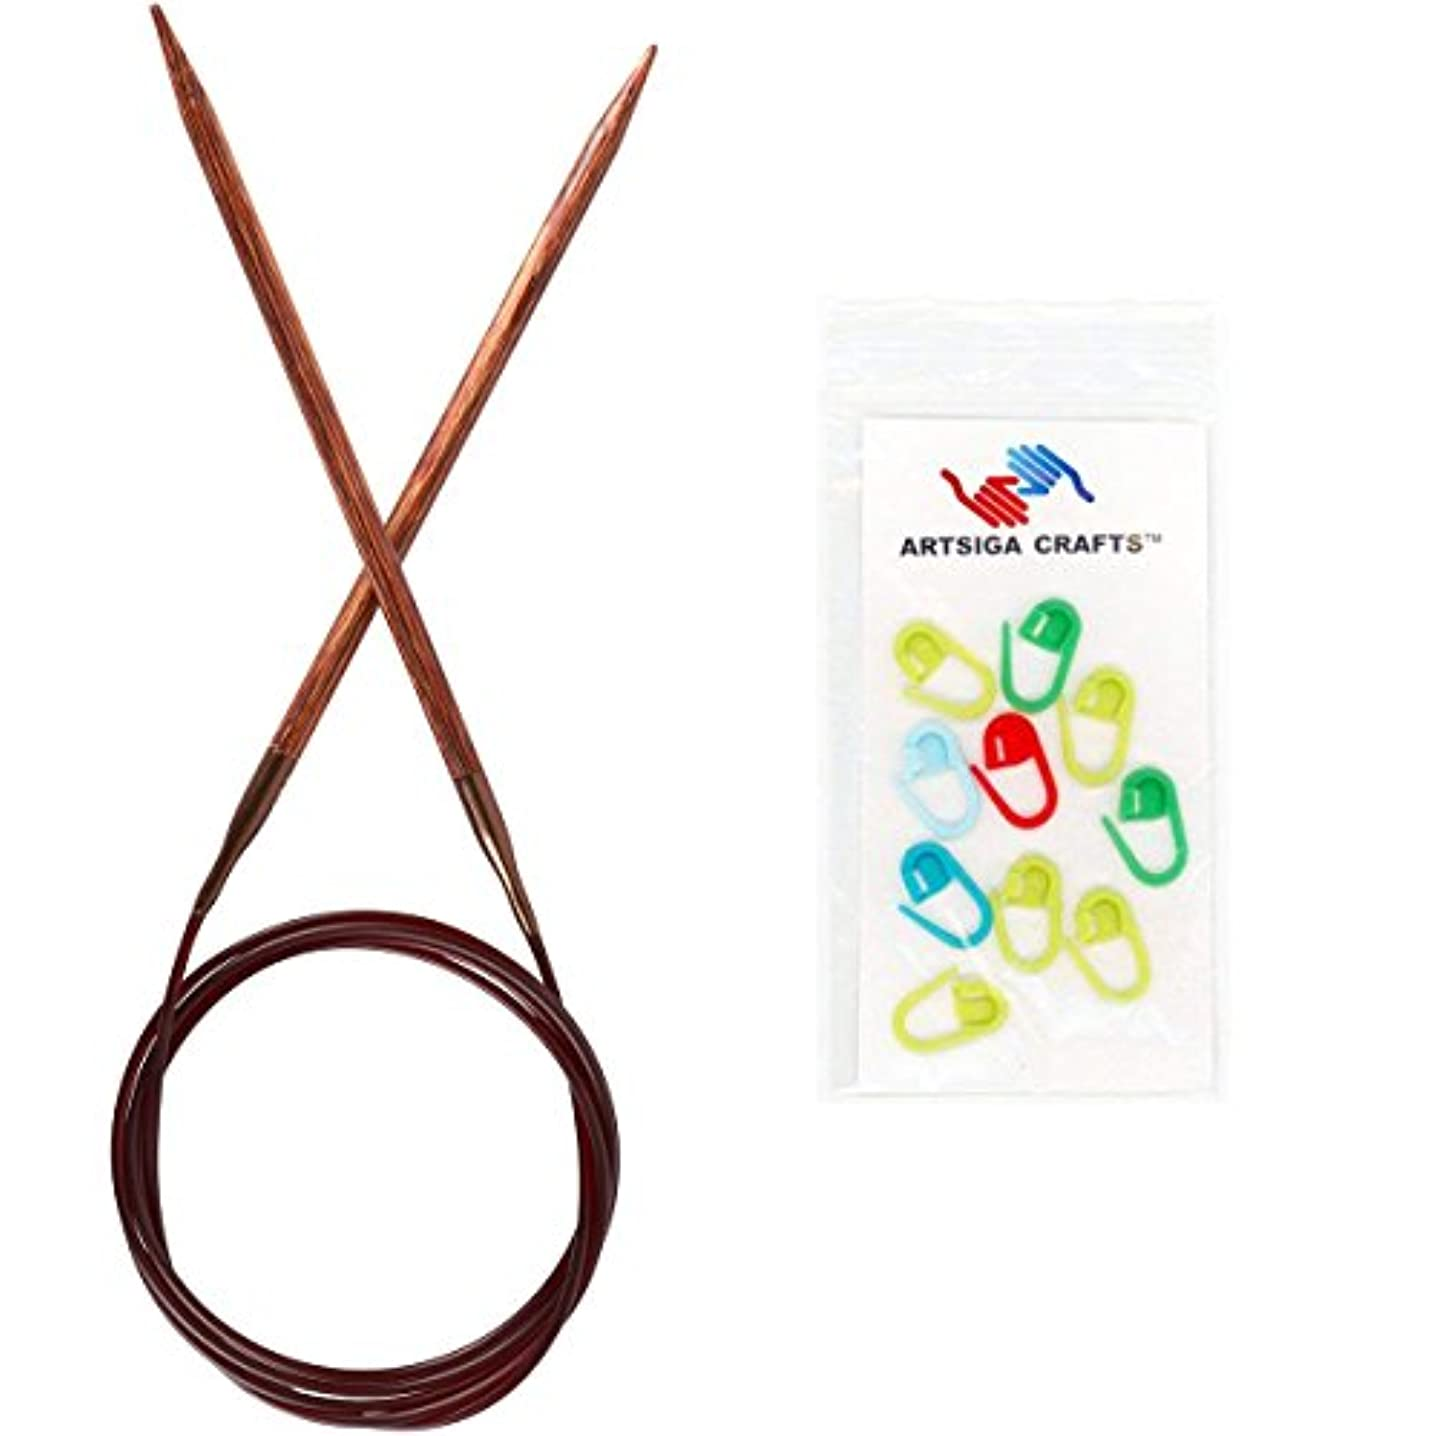 Knitter's Pride Knitting Needles Ginger Fixed Circular 32 inch Size US 0 (2mm) Bundle with 10 Artsiga Crafts Stitch Markers